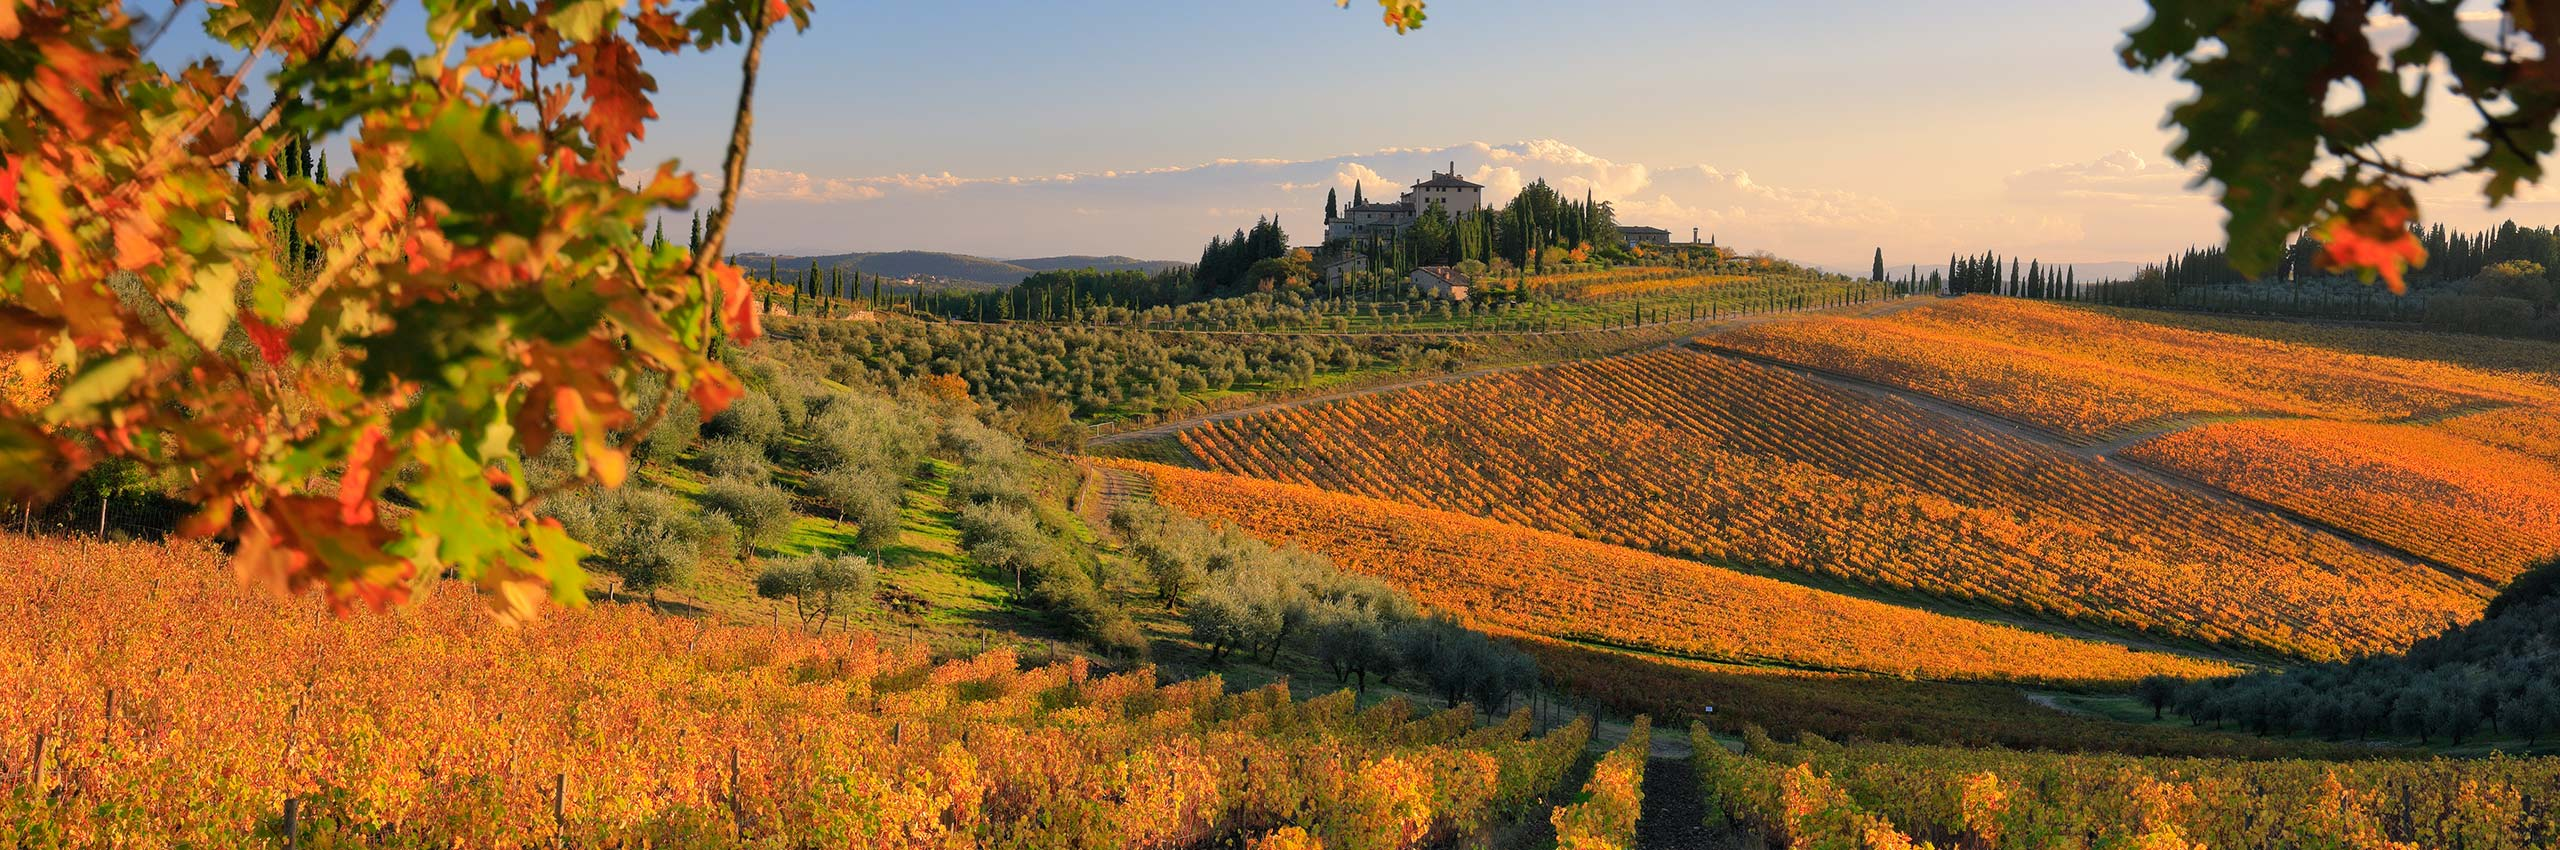 SIM-510352 | Italy/Tuscany, Siena district, Chianti, Gaiole in Chianti | © Riccardo Spila/4Corners